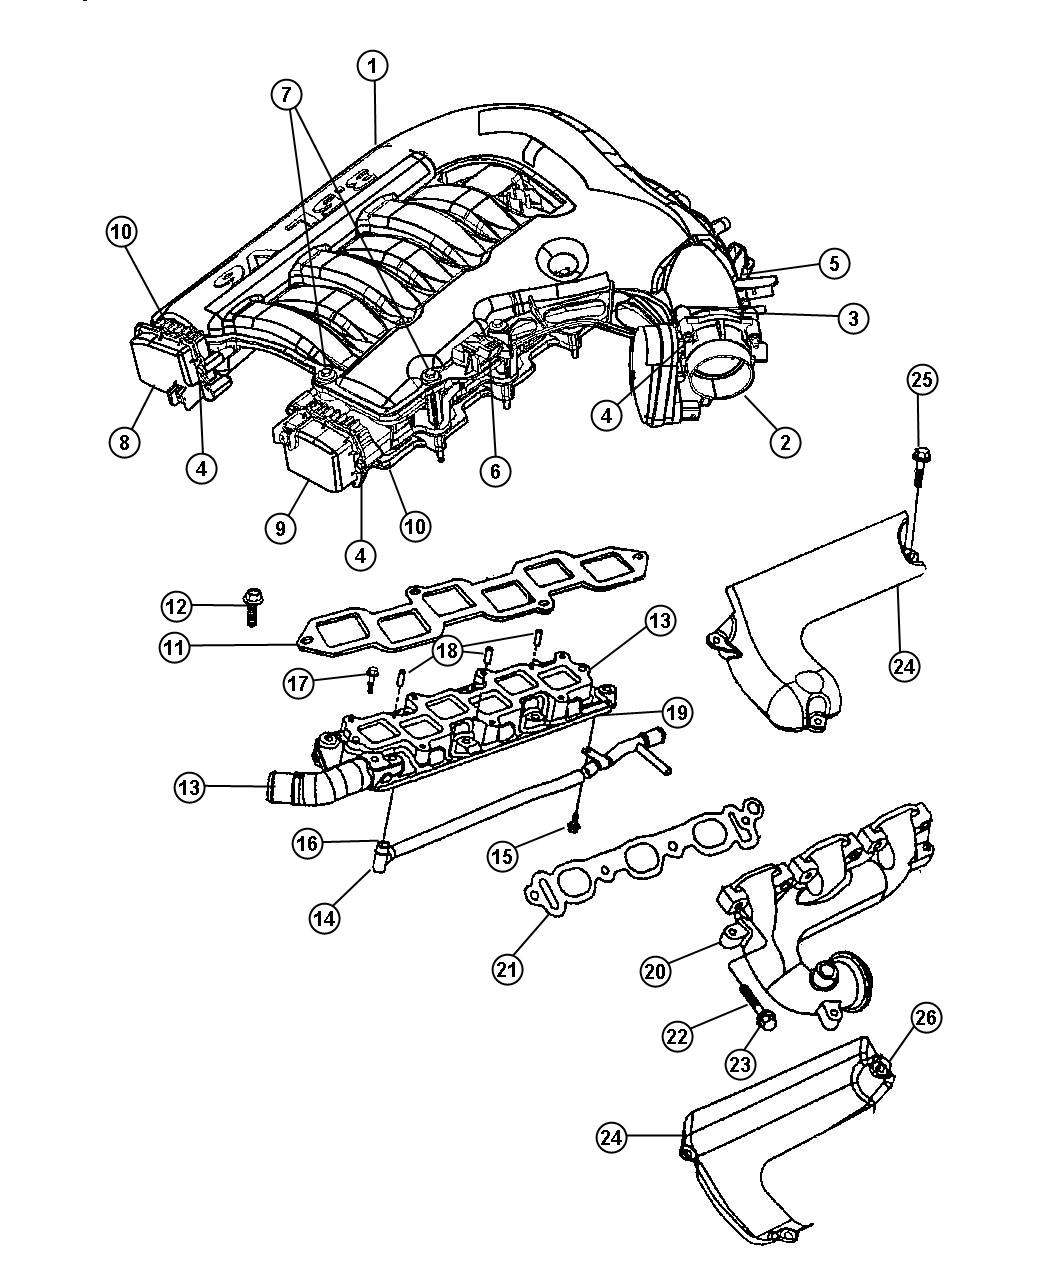 chrysler 3 5 dohc engine diagram  chrysler  get free image